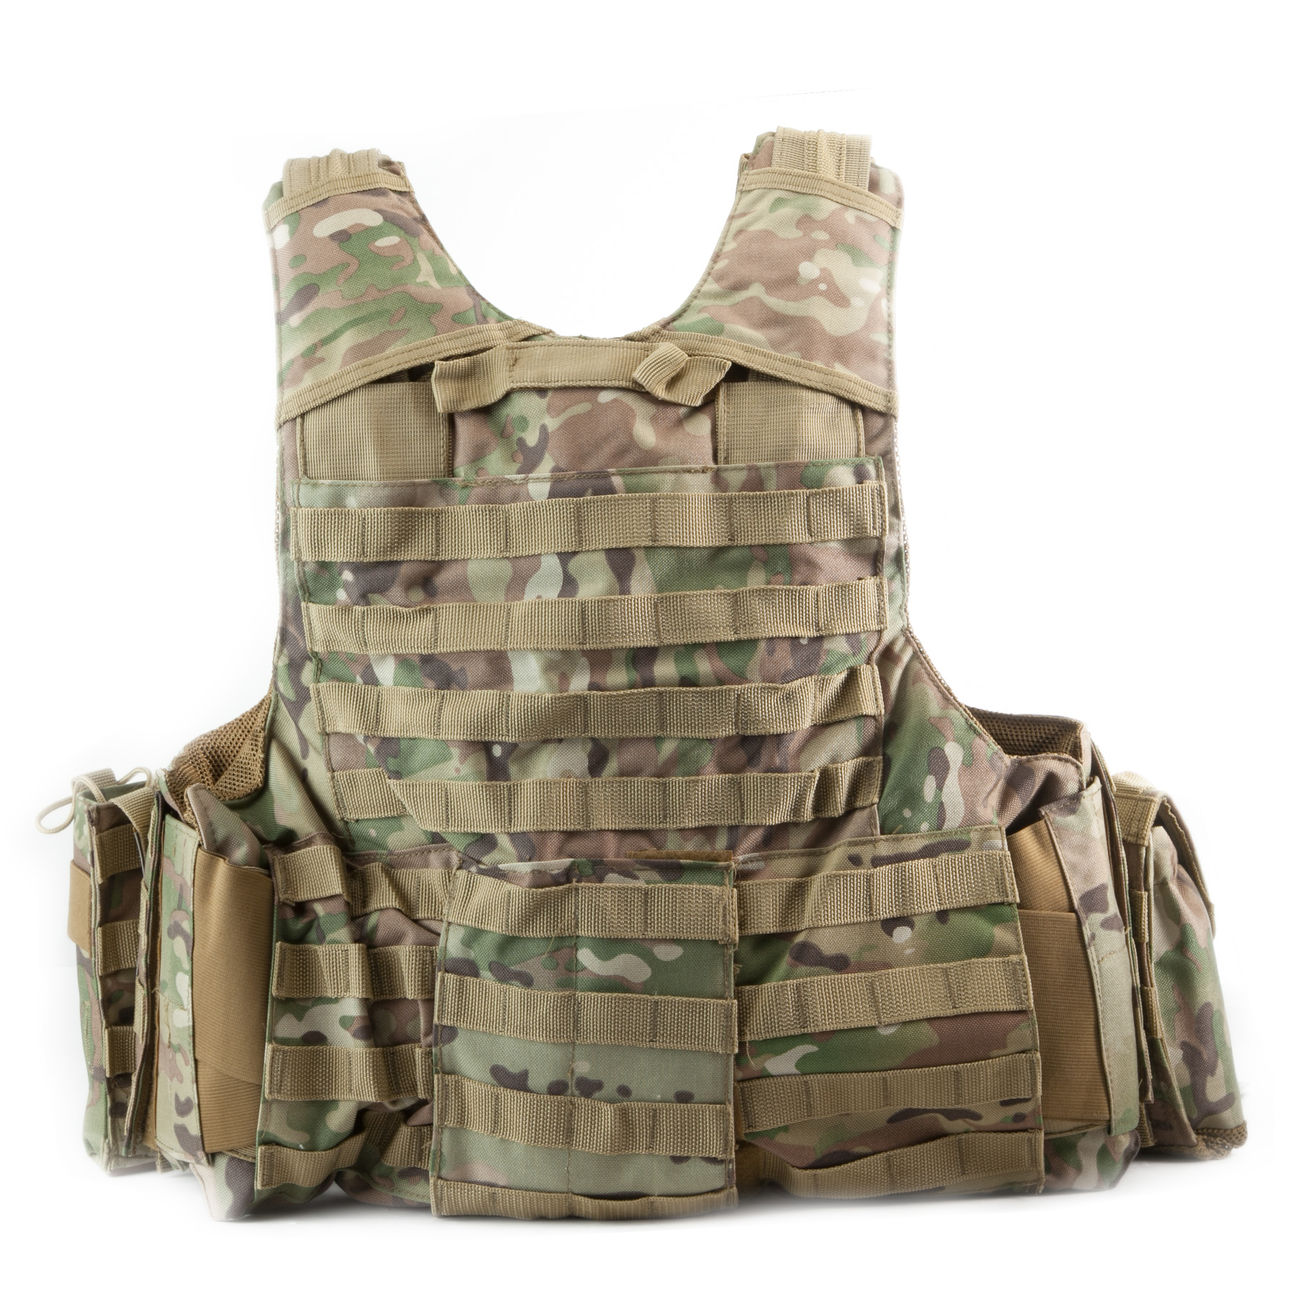 101 INC. Raptor Tactical Vest DTC Multi 2